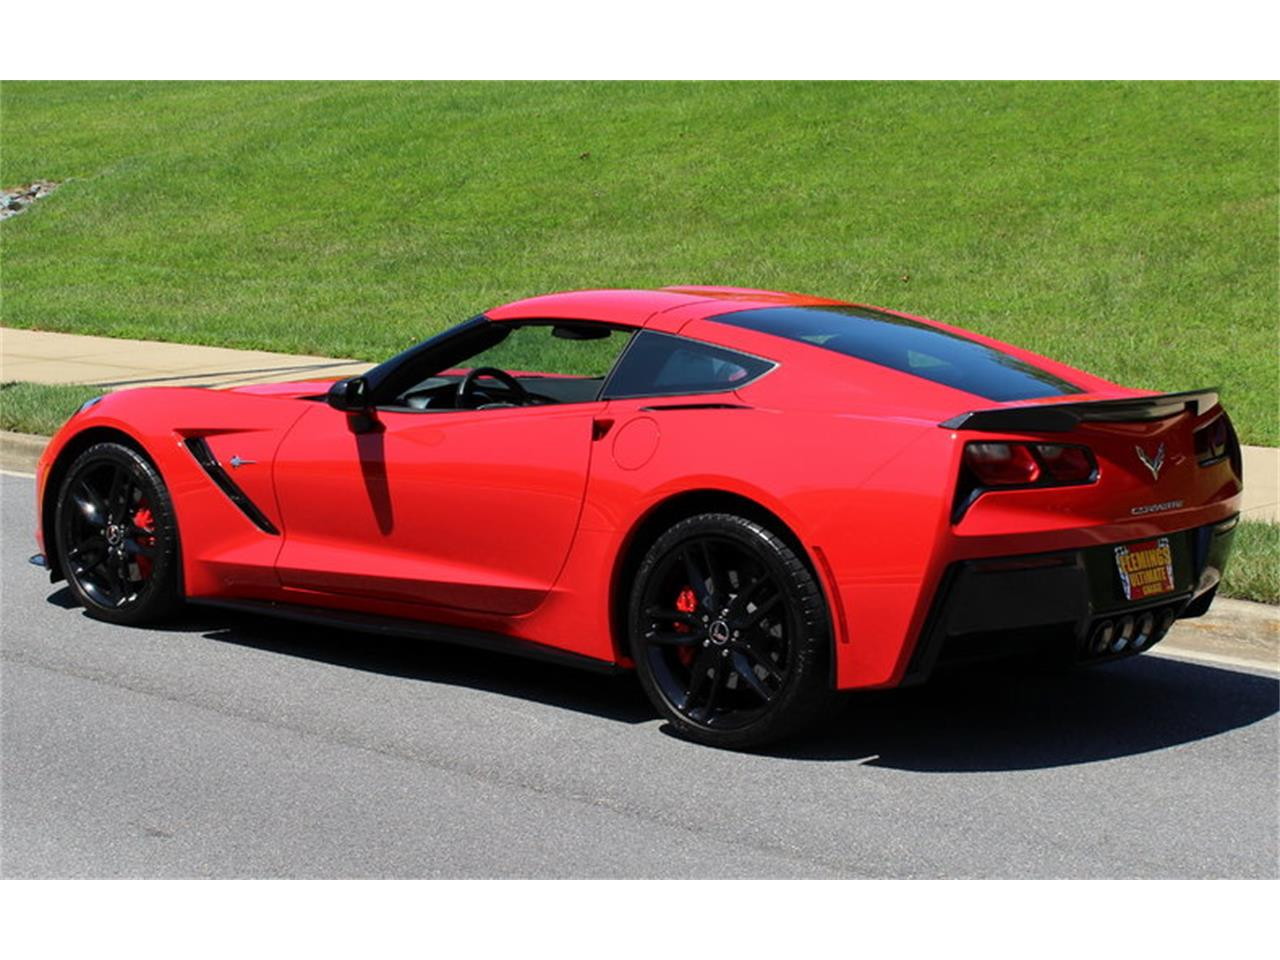 Large Picture of 2014 Chevrolet Corvette located in Maryland Offered by Flemings Ultimate Garage - MGRV